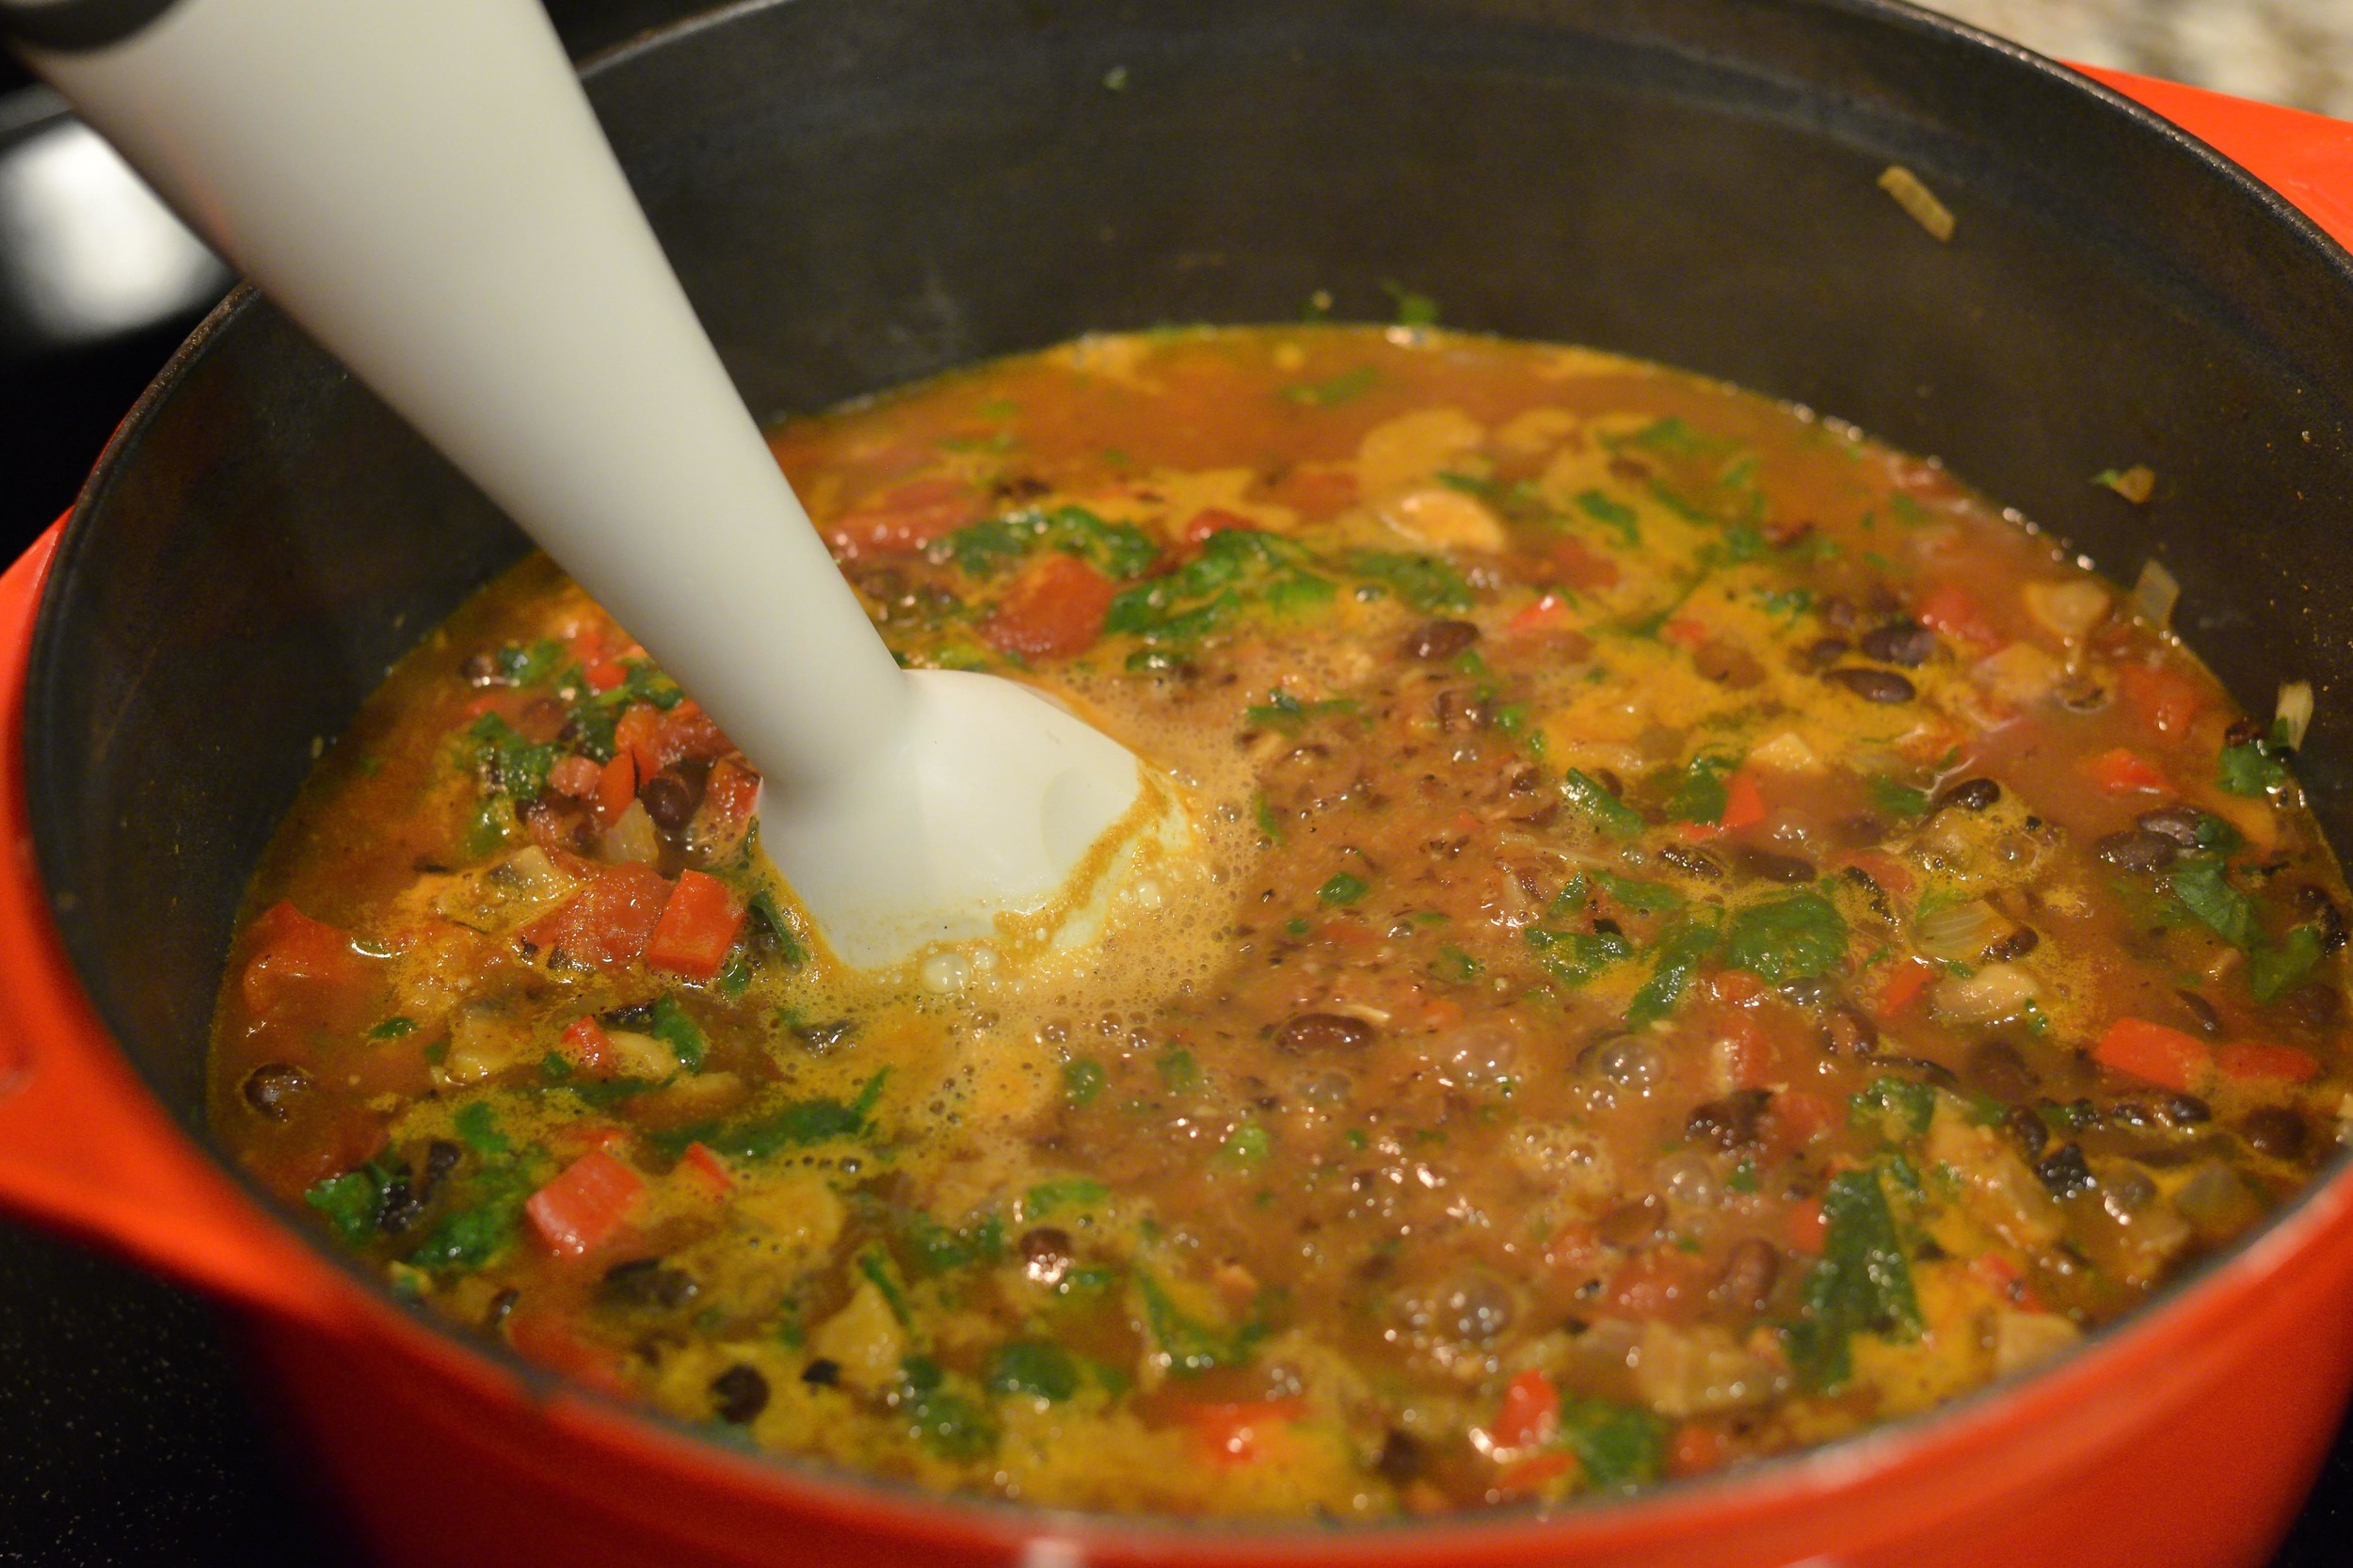 Immersion blenders are a convenient and safeway to puree hot foods right in the pot.